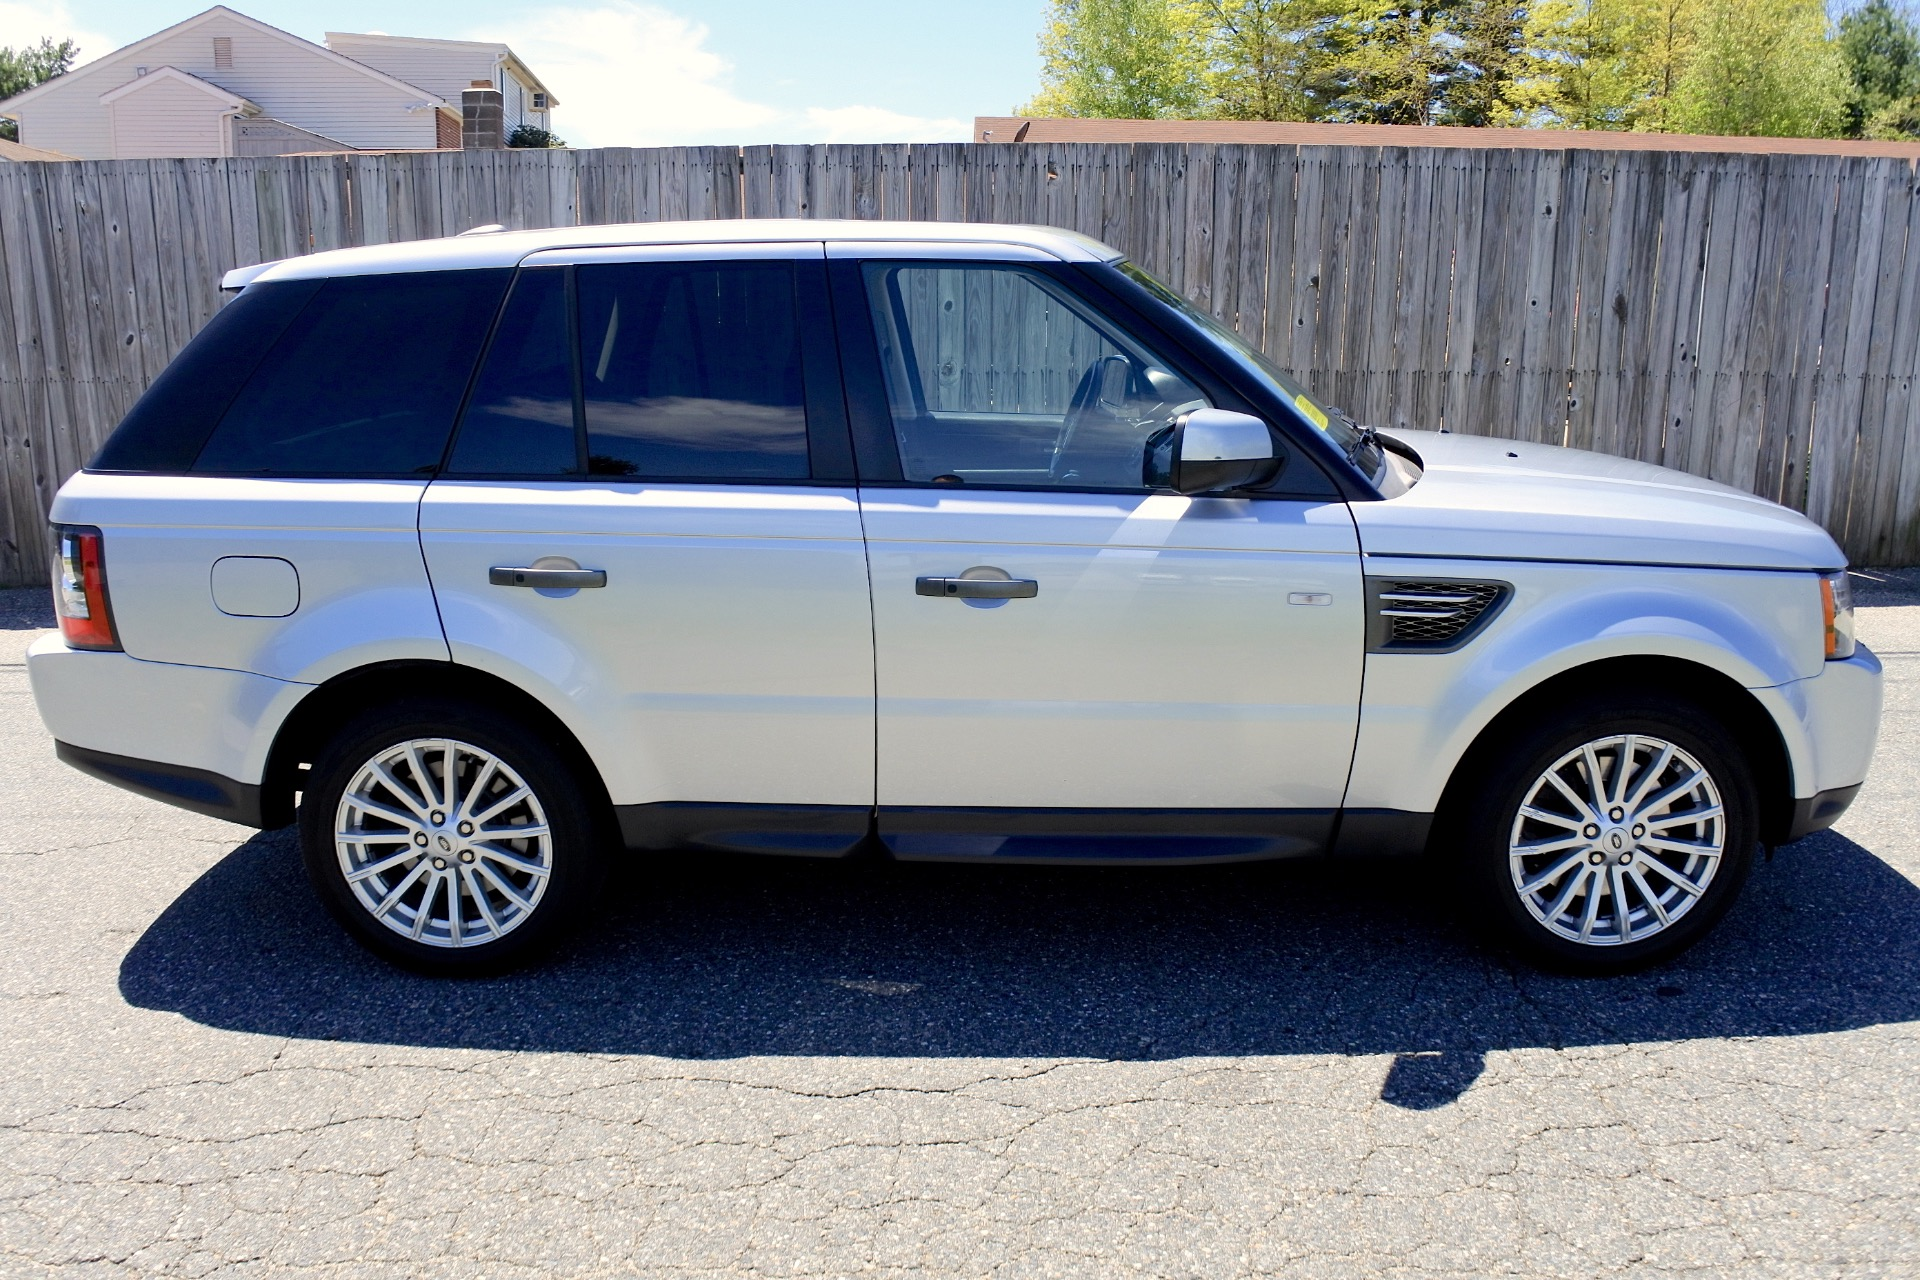 Used 2011 Land Rover Range Rover Sport HSE Used 2011 Land Rover Range Rover Sport HSE for sale  at Metro West Motorcars LLC in Shrewsbury MA 6